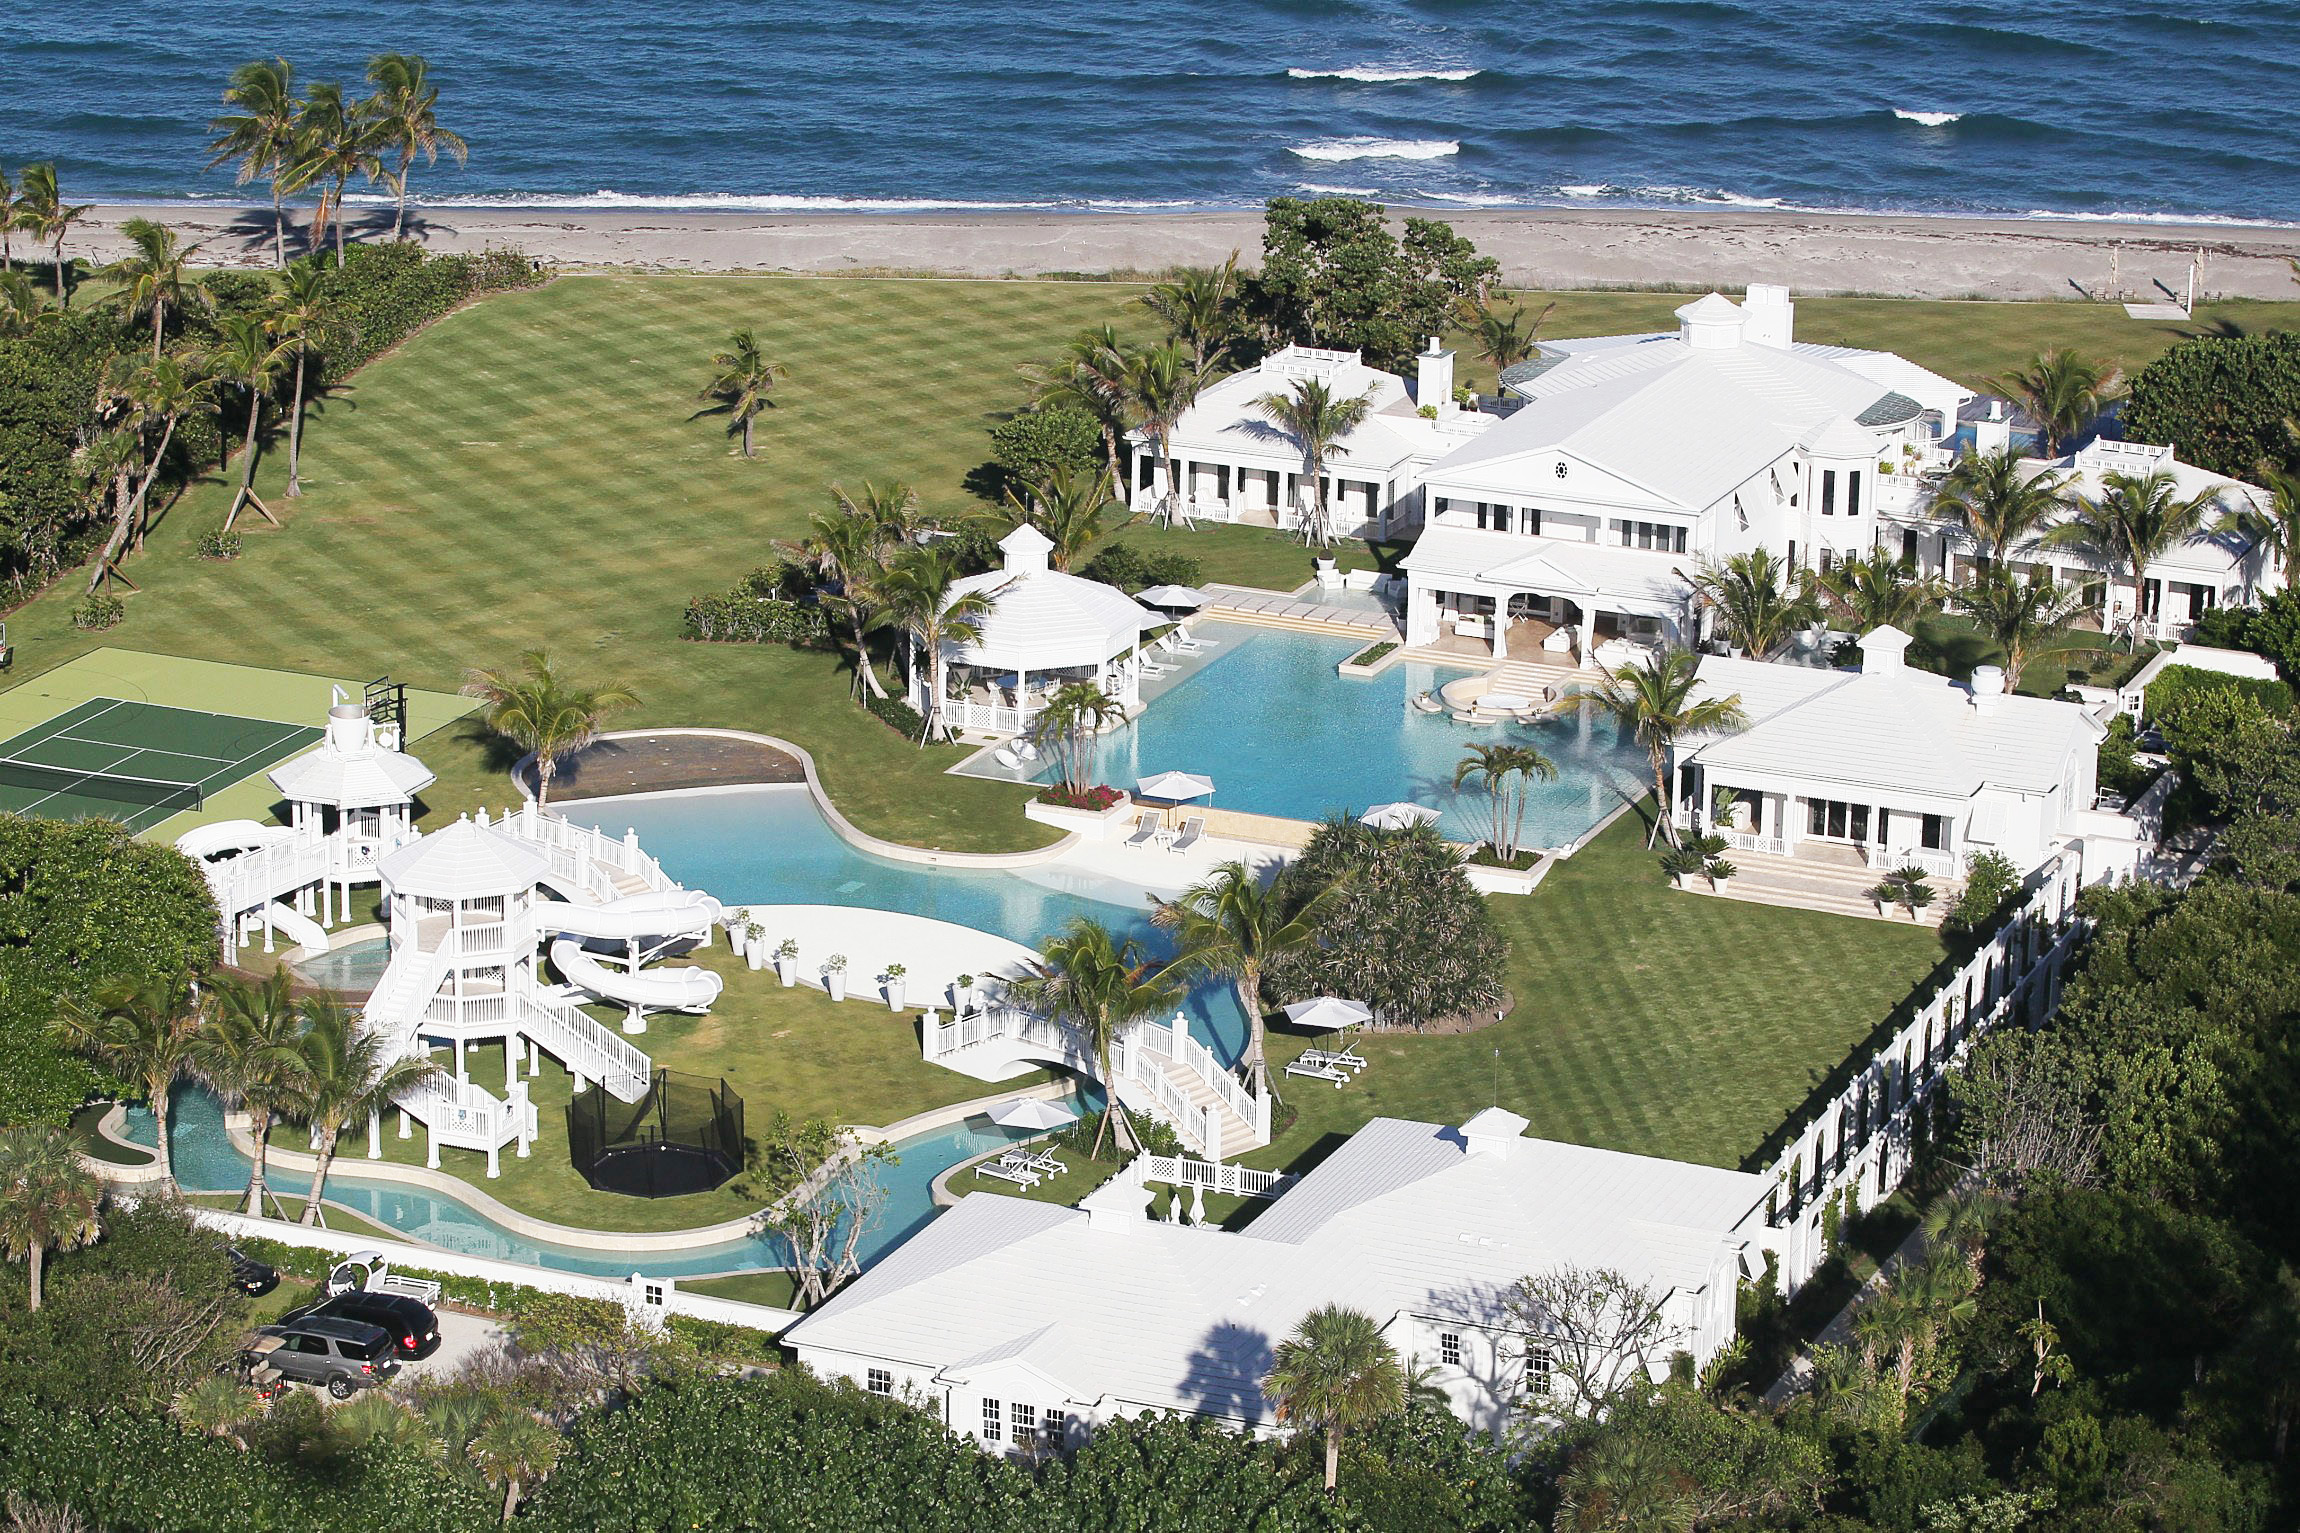 An aerial of an oceanfront home with a water park